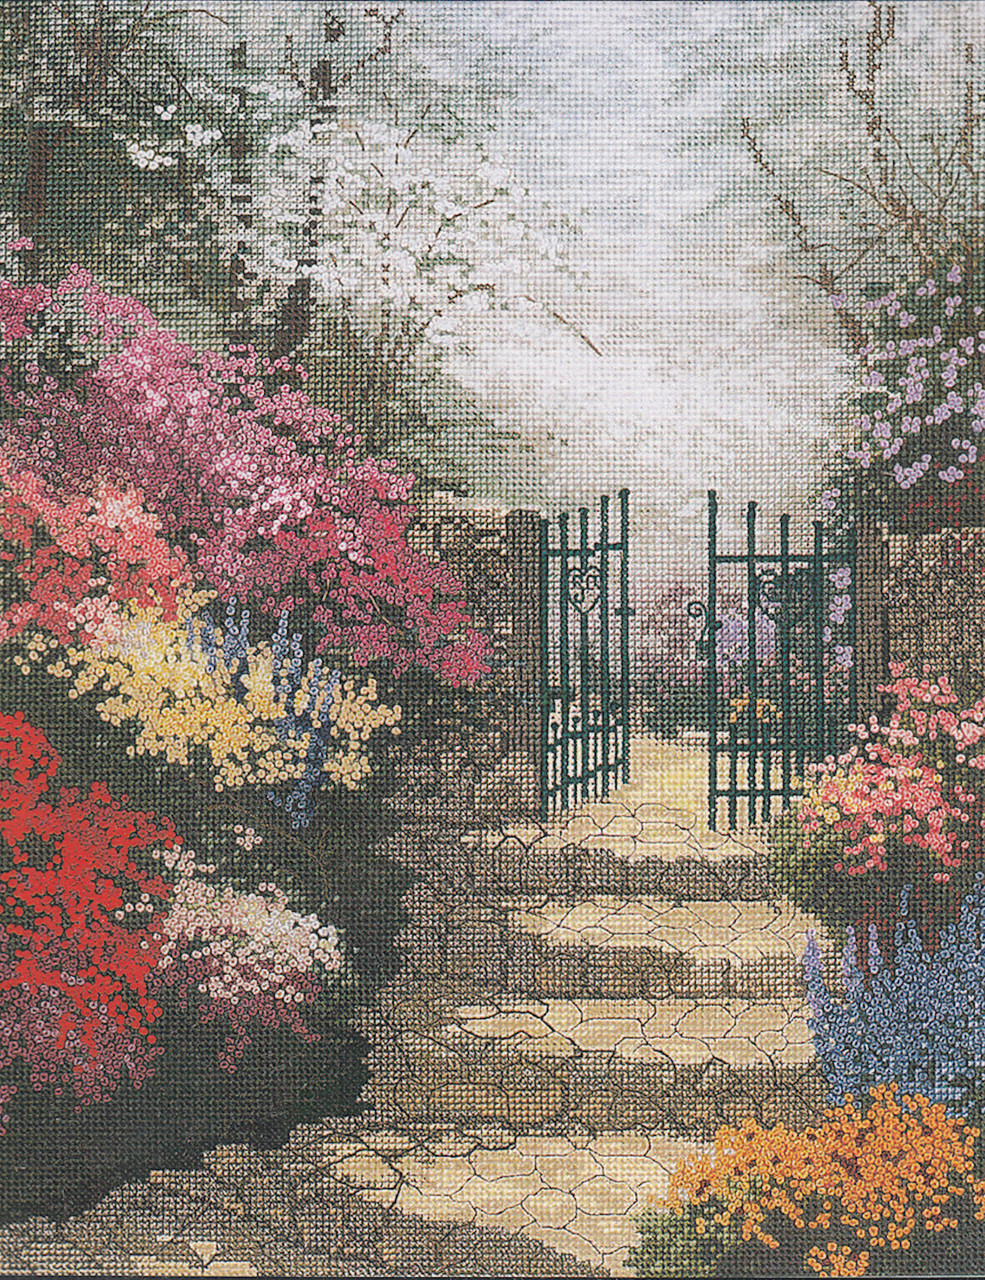 Candamar / Thomas Kinkade - The Garden of Promise